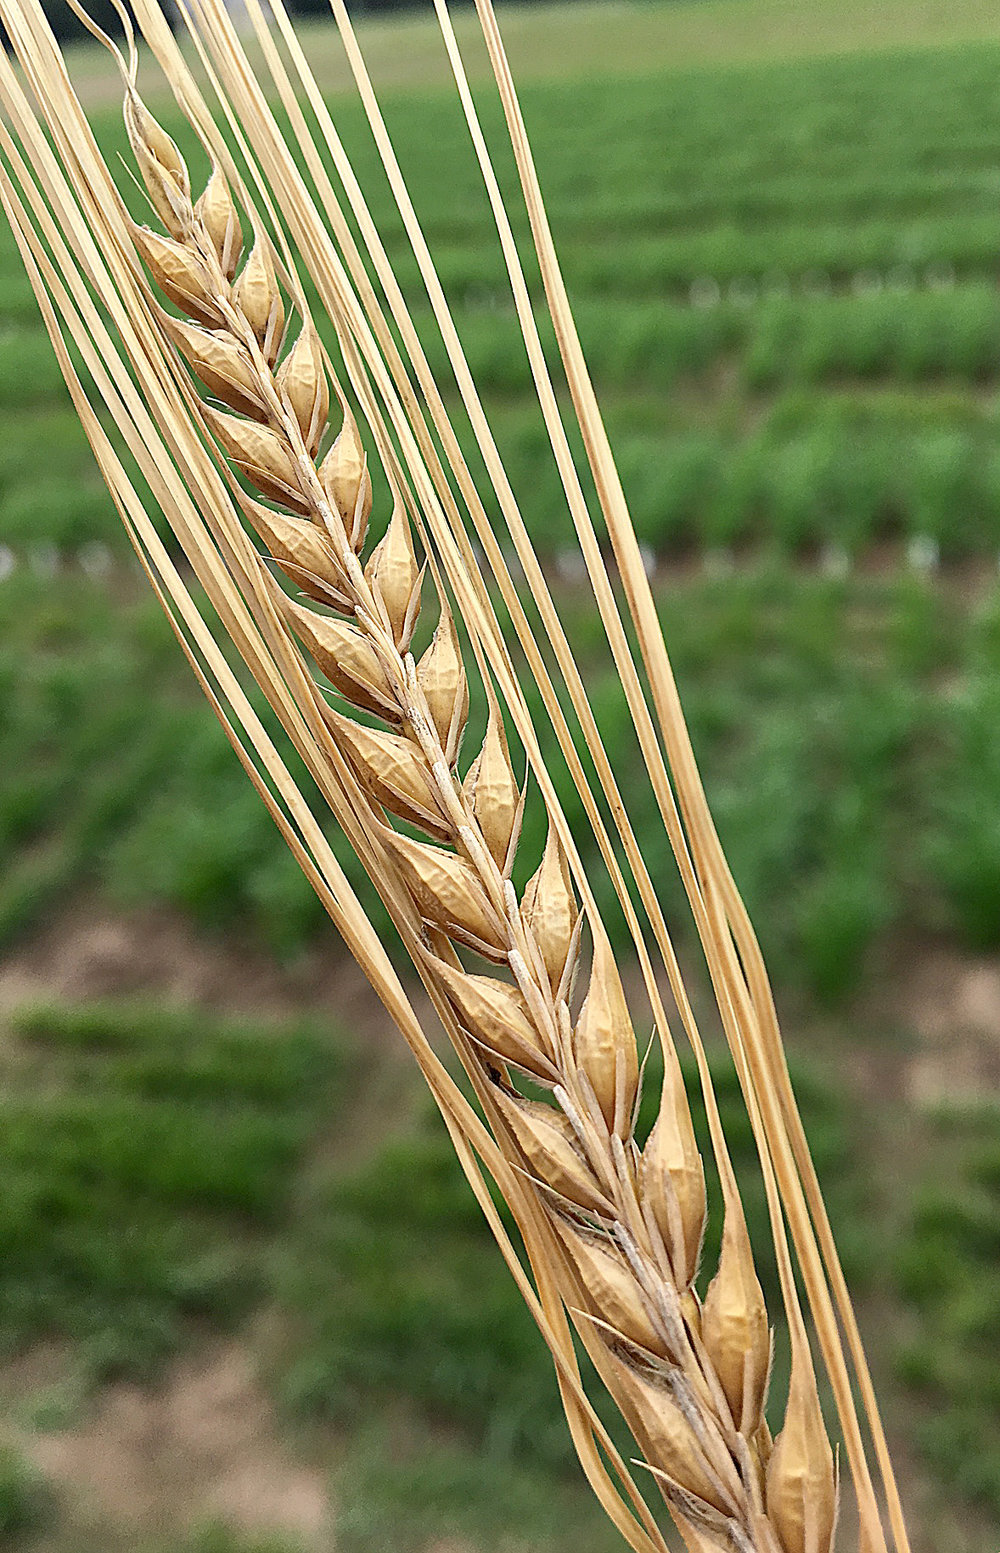 Beautiful 2-row barley.